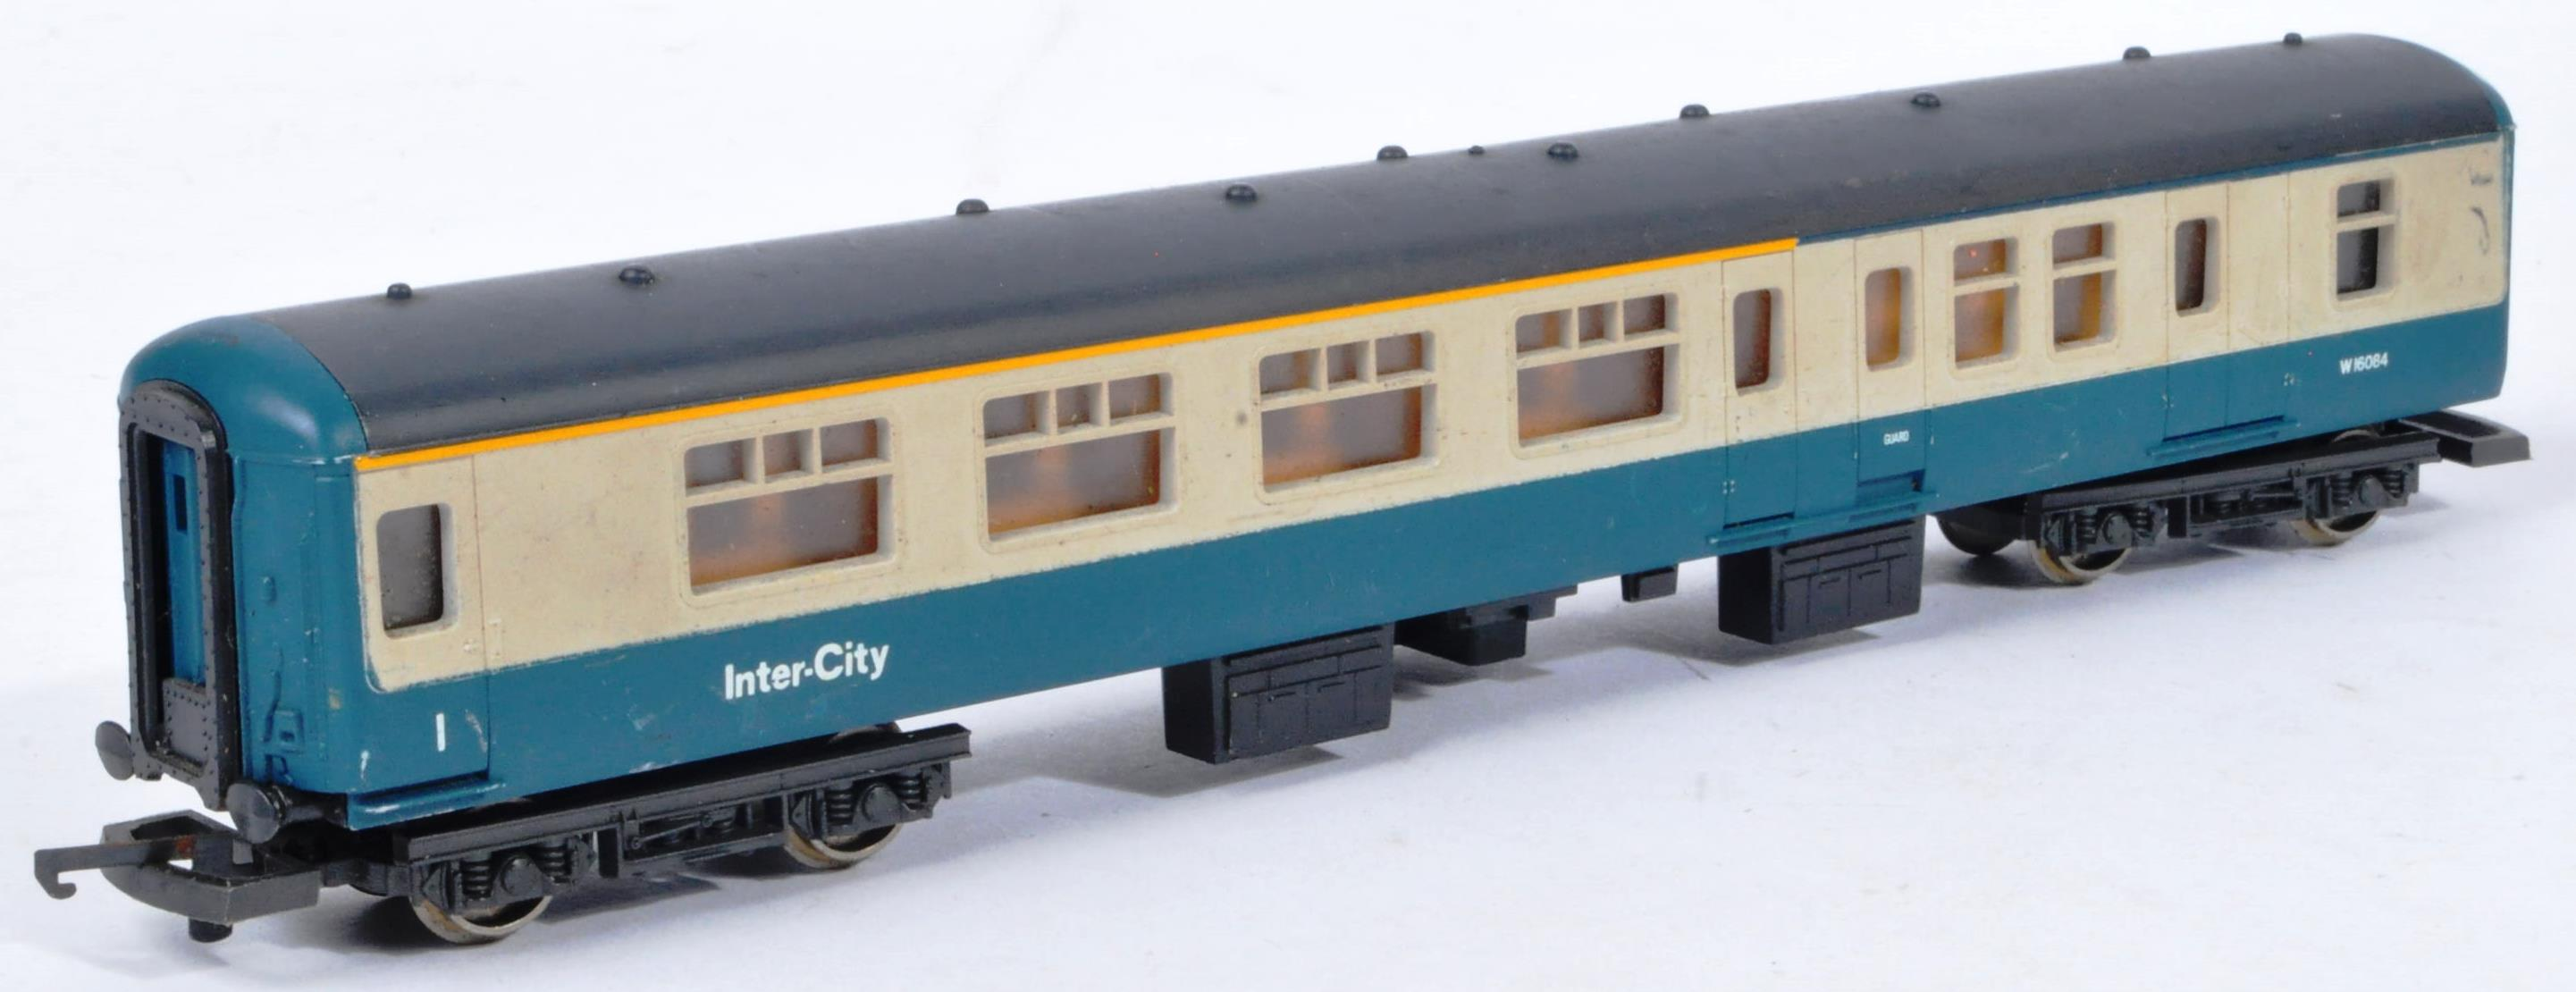 COLLECTION OF ASSORTED DIESEL 00 GAUGE TRAINSET LOCOMOTIVES & CARRIAGES - Image 9 of 10